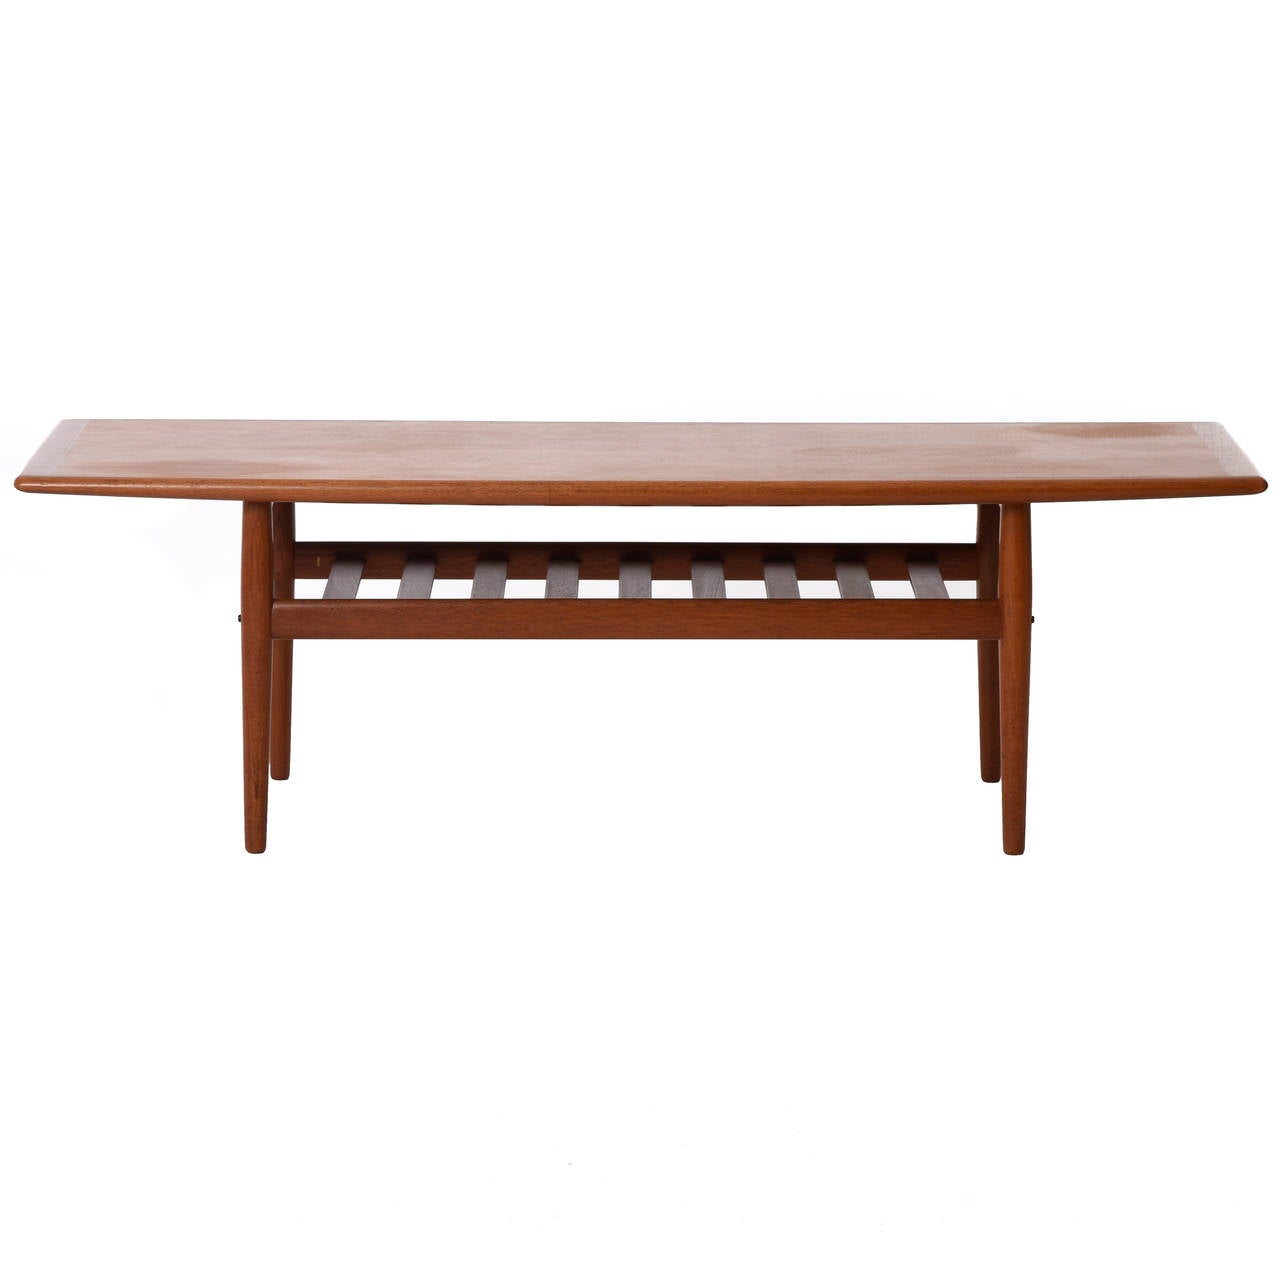 Mid-Century Danish Modern Teak Coffee Table With Slatted